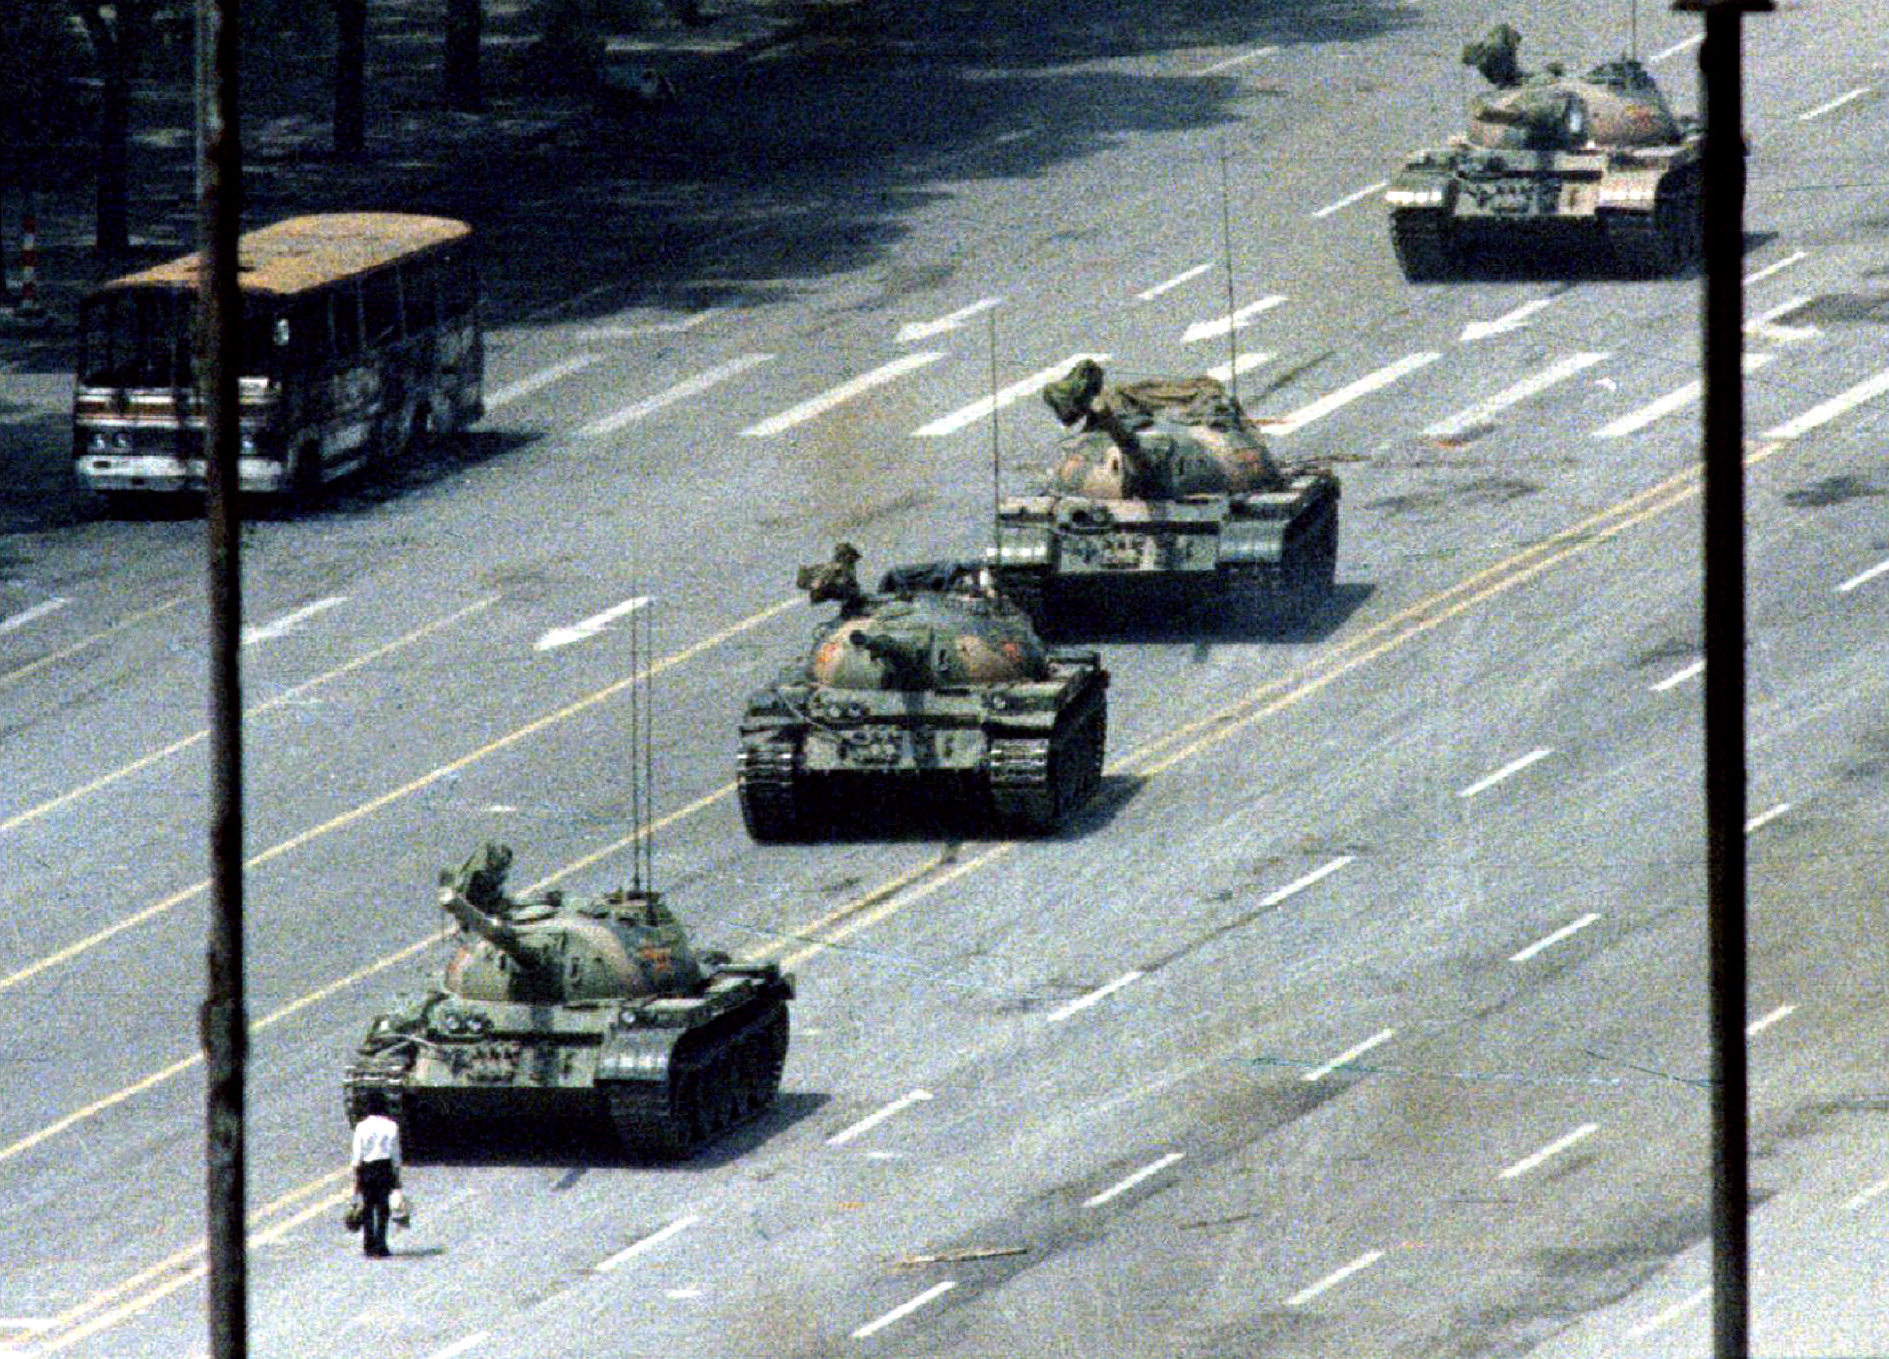 A Peking citizen stands passively in front of a convoy of tanks on the Avenue of Eternal peace. REUTERS/Stringer